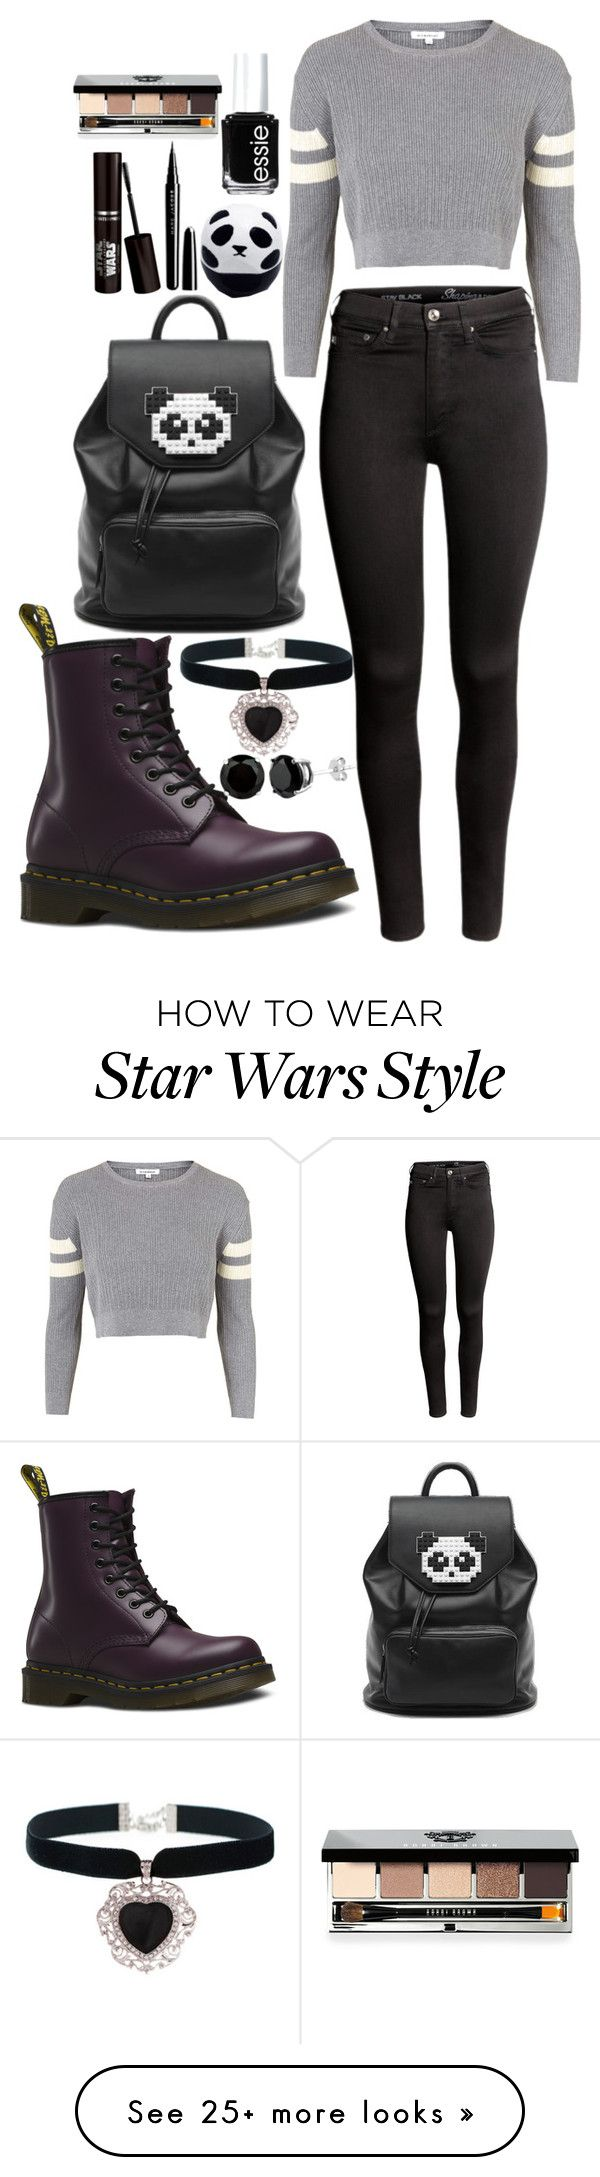 """""""Casual"""" by chap15906248 on Polyvore featuring Topshop, H&M, Dr. Martens, Freddy, Rock 'N Rose, Eos, Marc Jacobs, Essie and Bobbi Brown Cosmetics"""